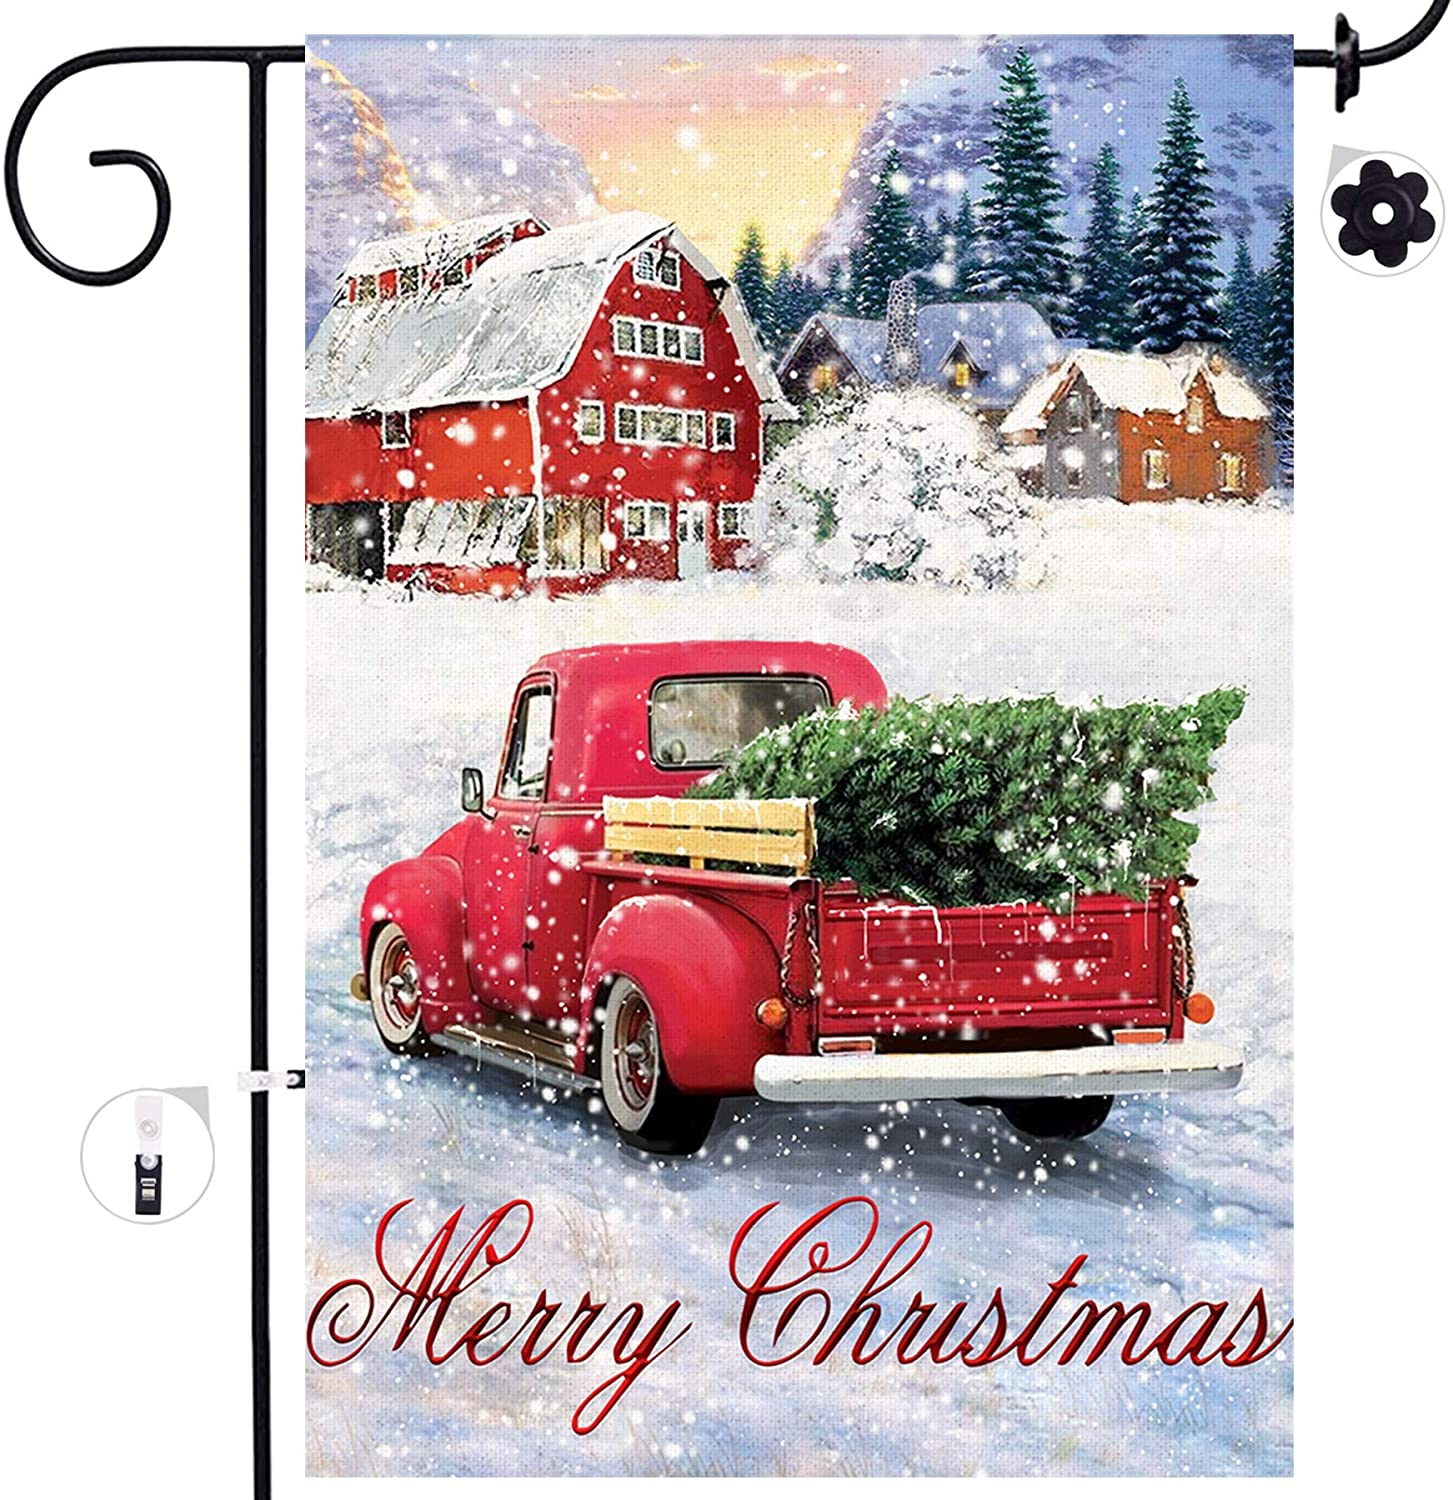 Merry Christmas Winter Signs Rustic Outdoor Decorations Yard 12 x 18 Prime Bonsai Tree Christmas Burlap Garden Flags Double Sided Red Truck with Christmas Tree House Flags